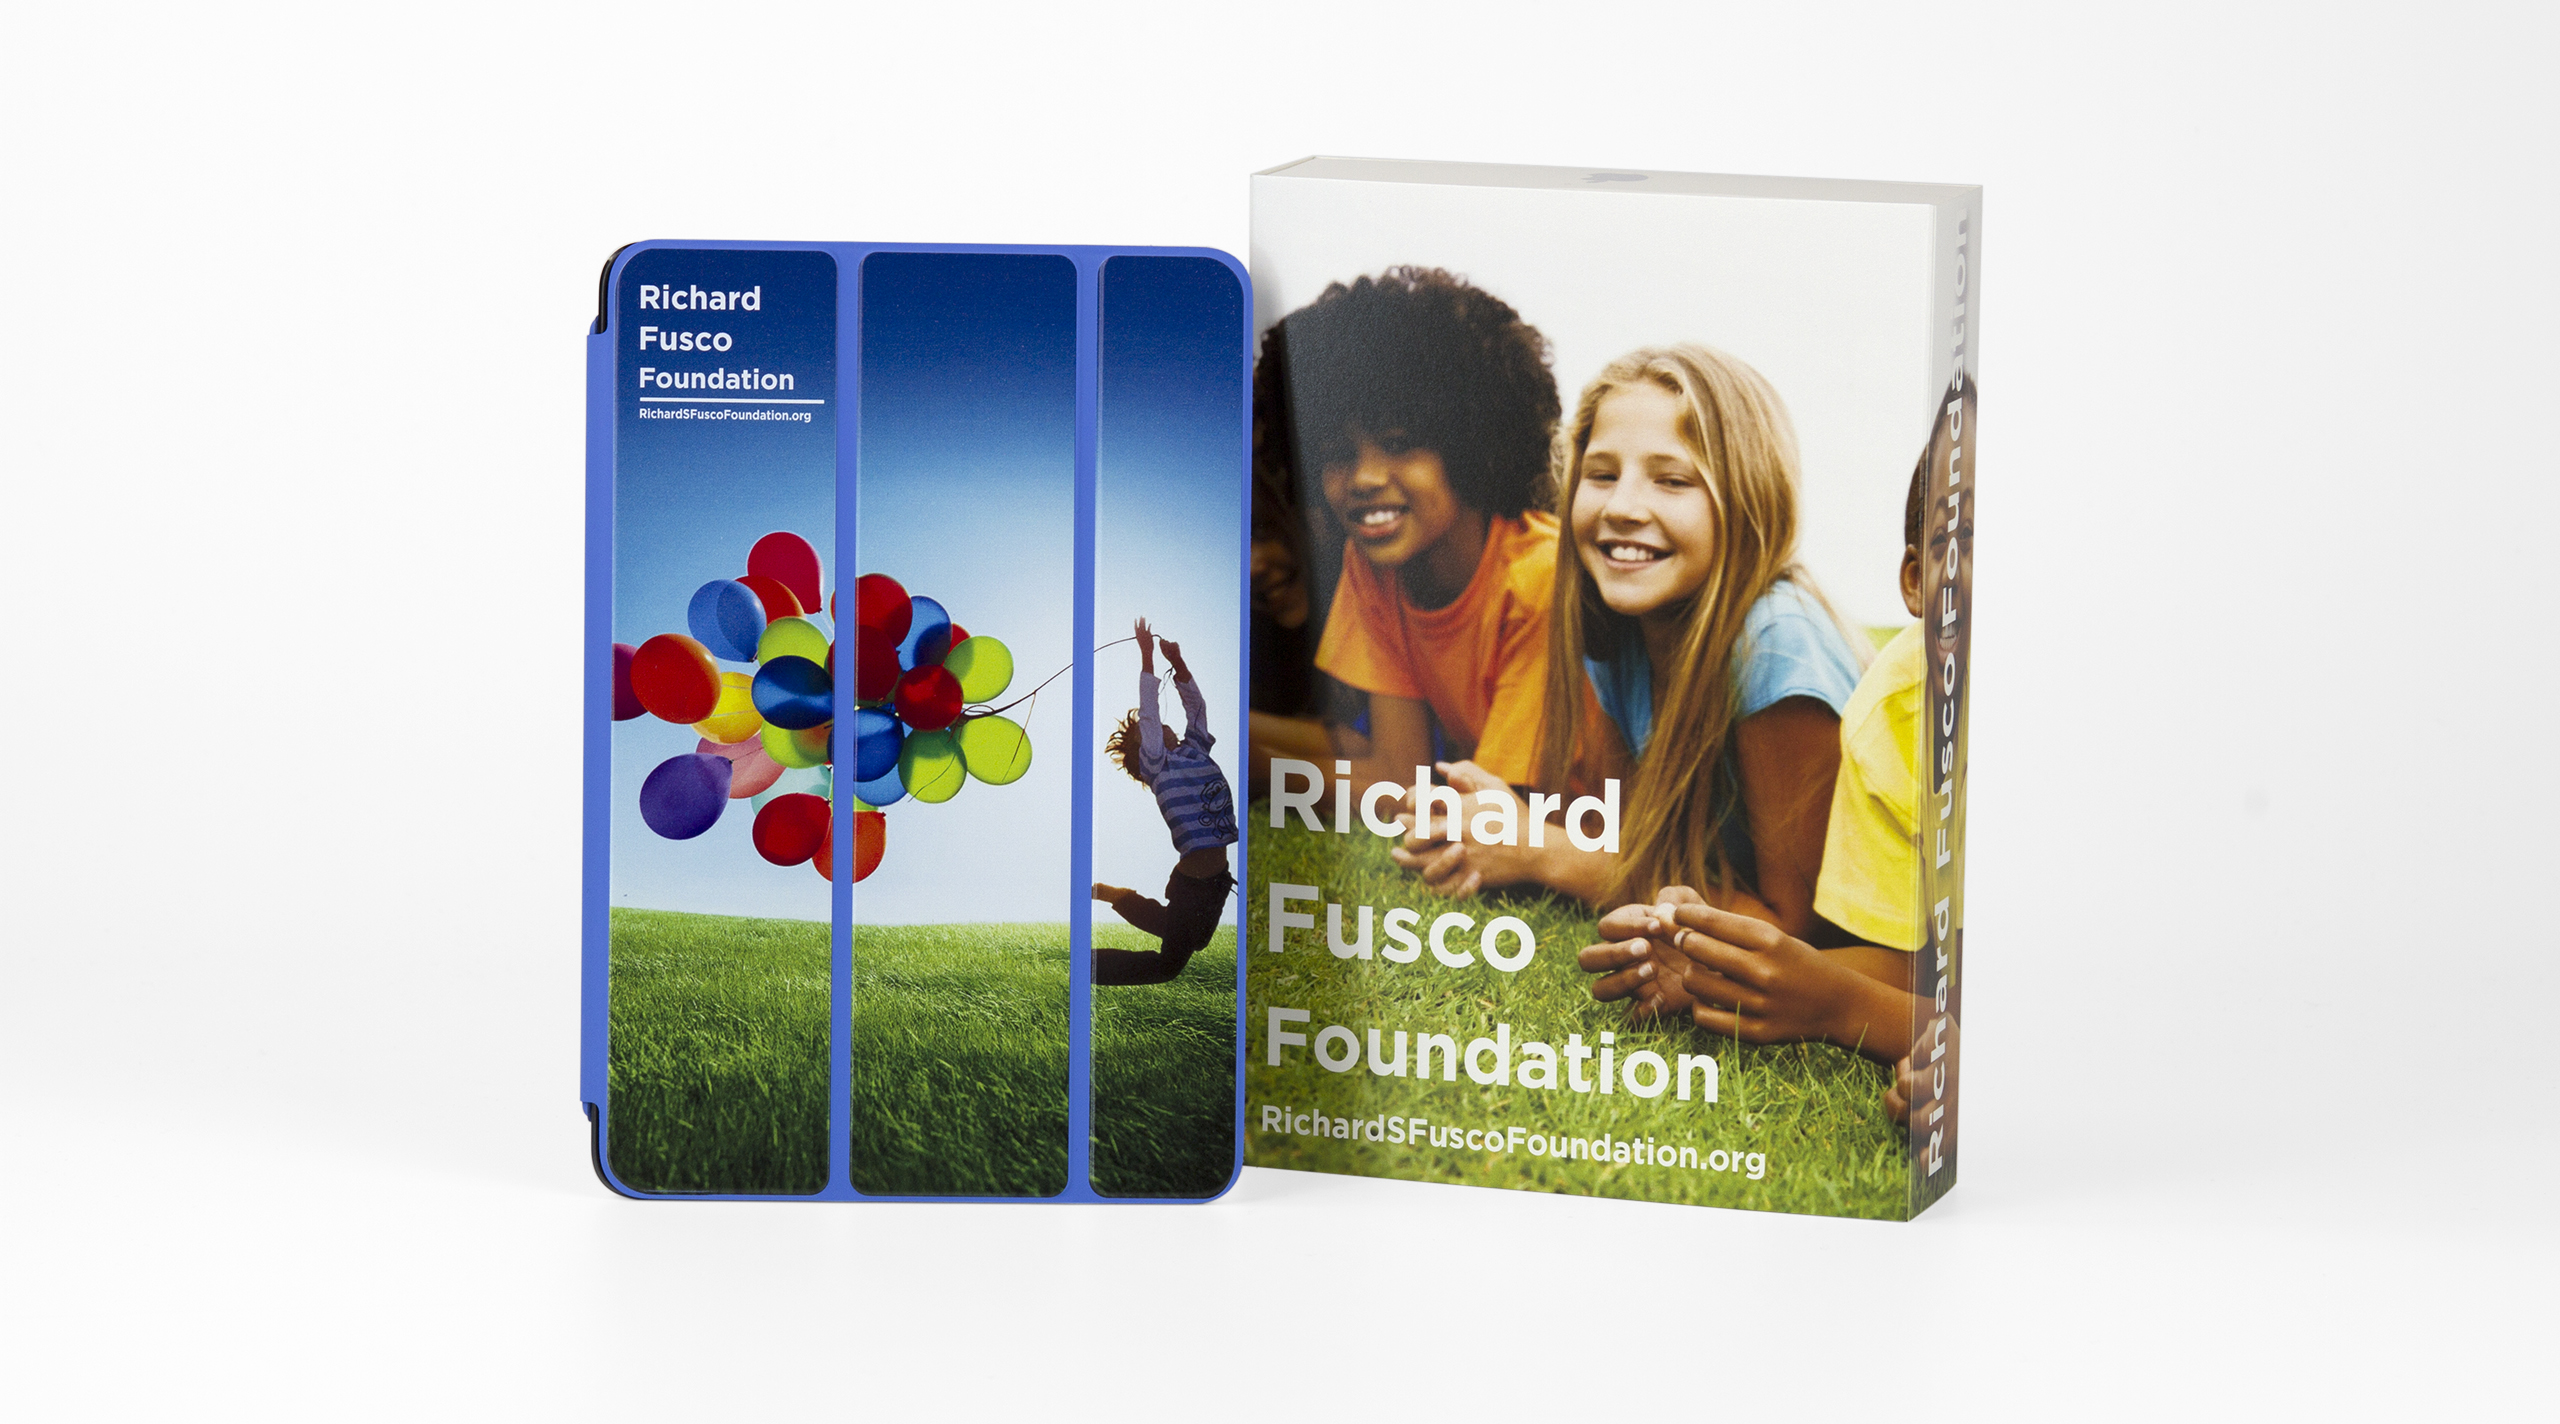 Each iPad is custom branded with the Foundation's colorful brand.